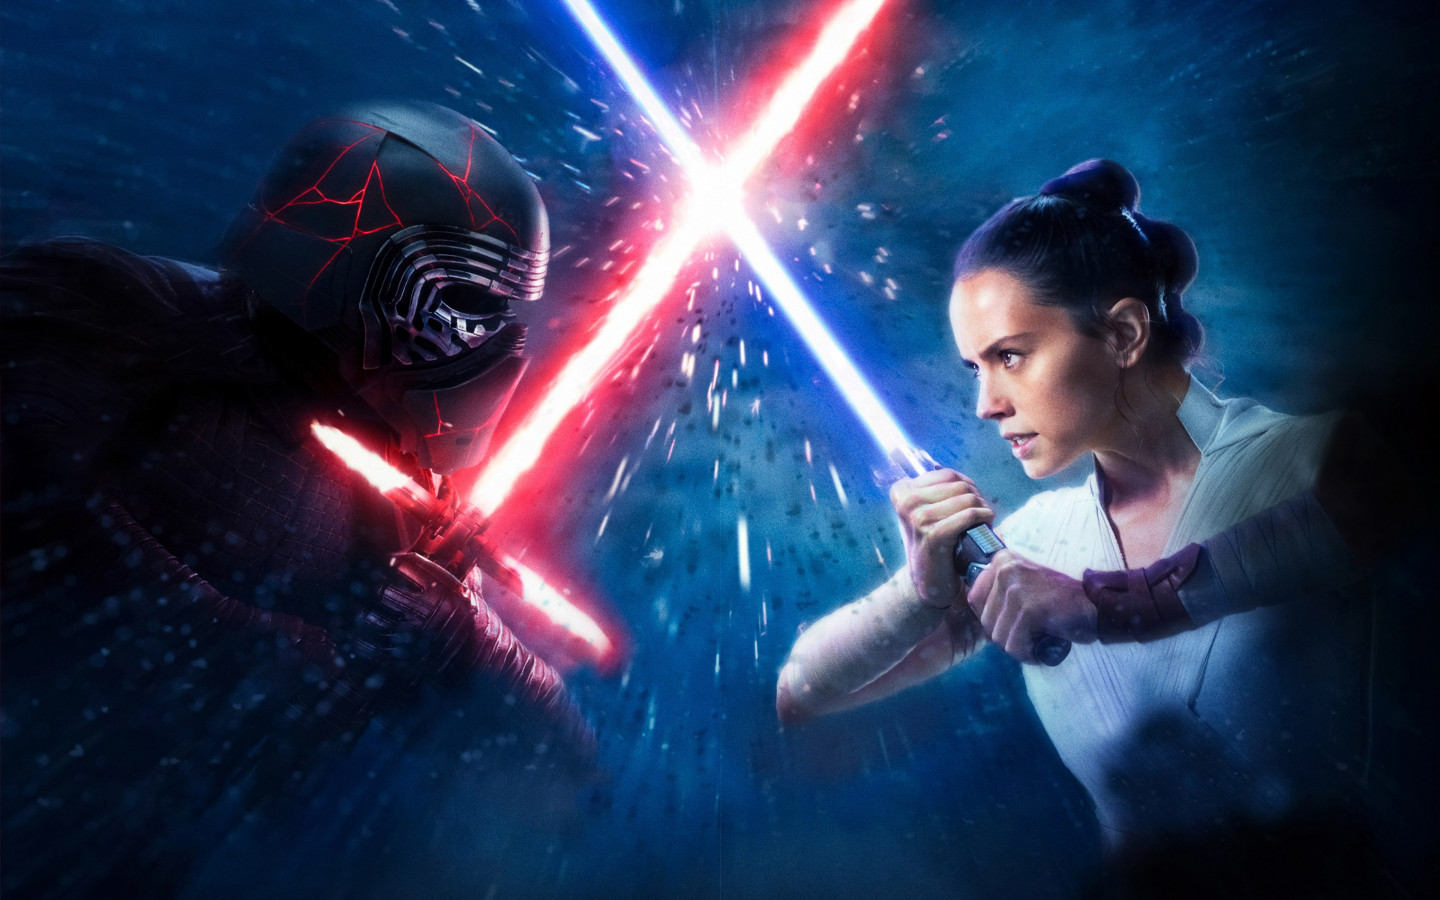 Download Wallpaper Star Wars The Rise Of Skywalker New Poster 1440x900